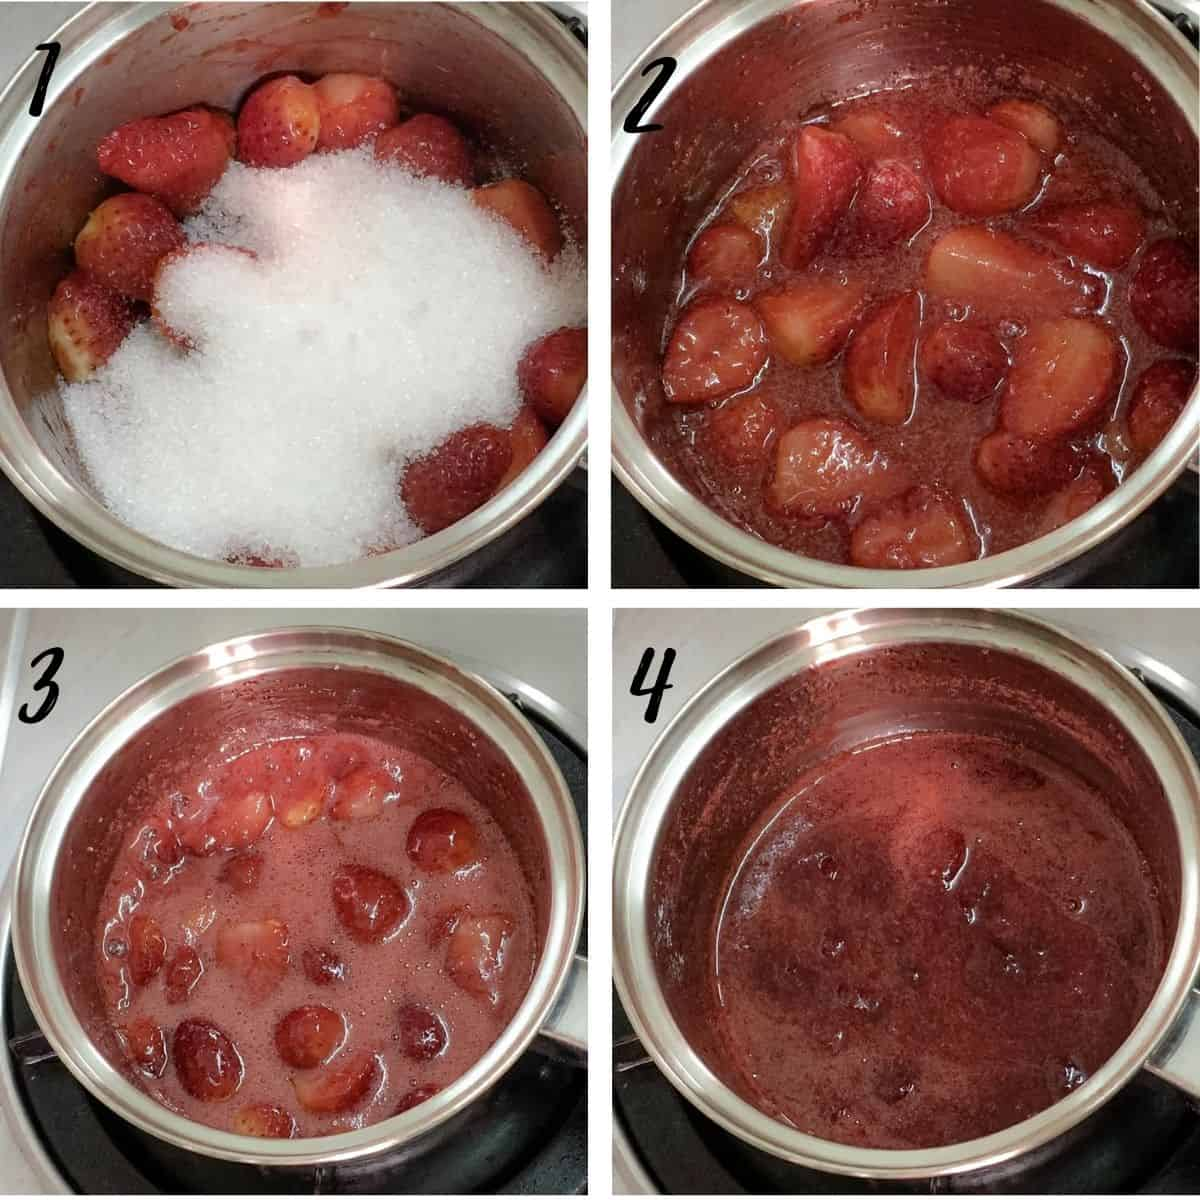 A poster of 4 images show strawberries cooked with sugar to make jam